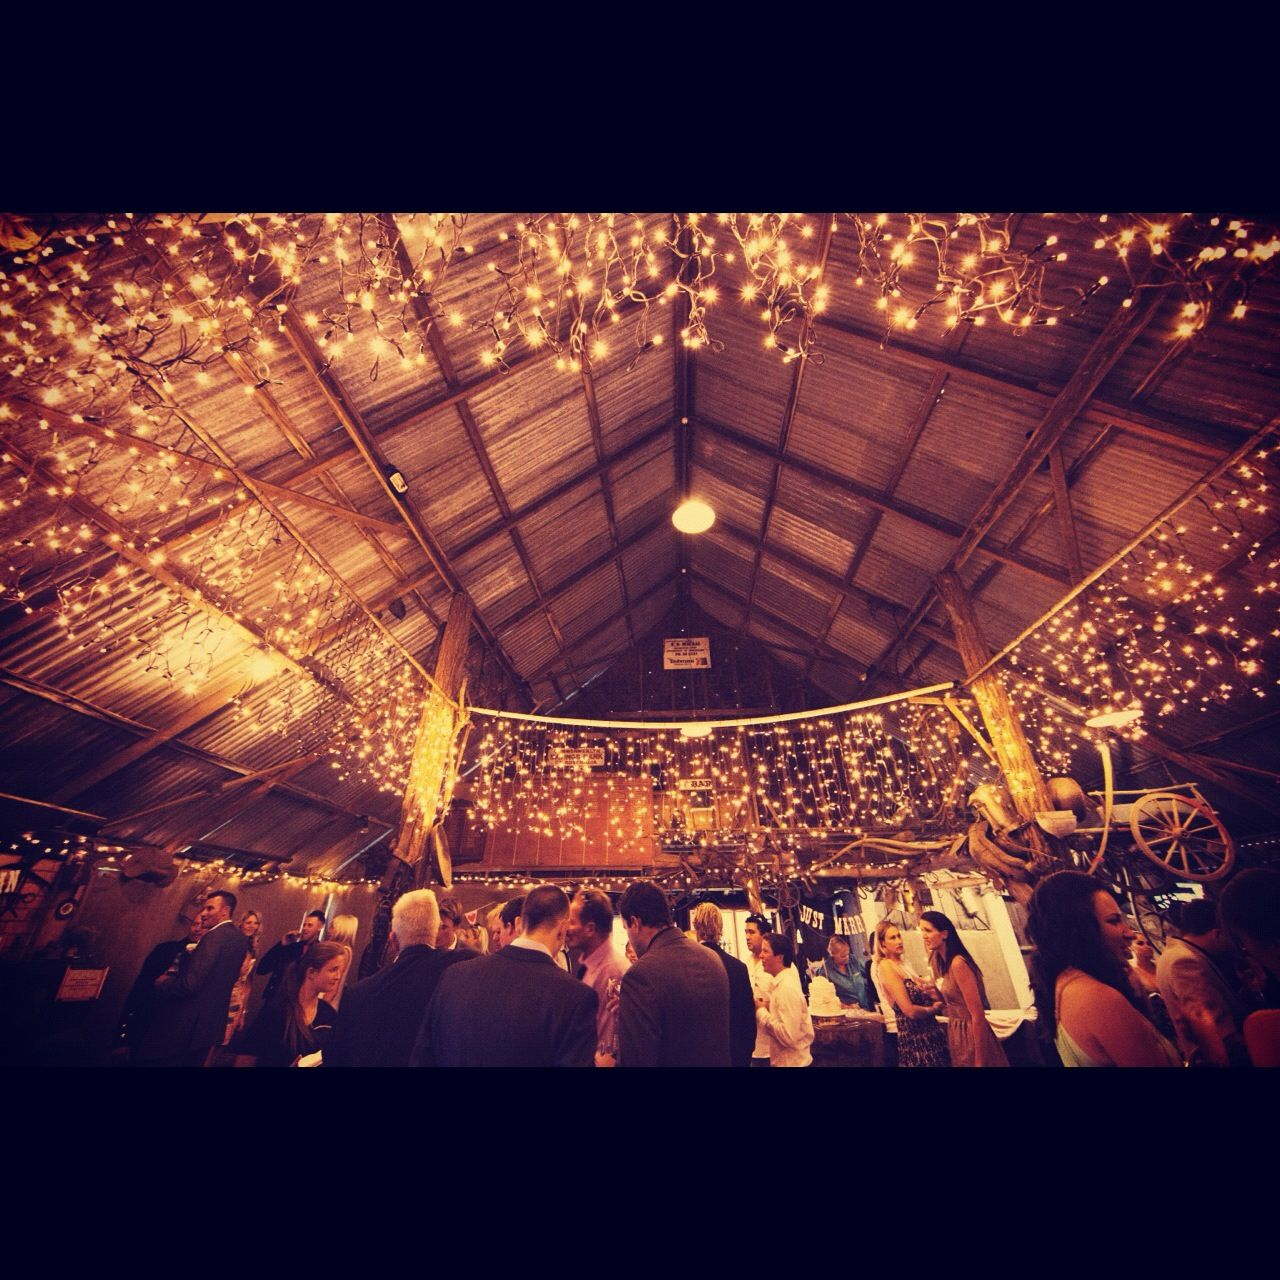 Our Rustic Barn Wedding Fairy Lights Boomerang Golf Course And